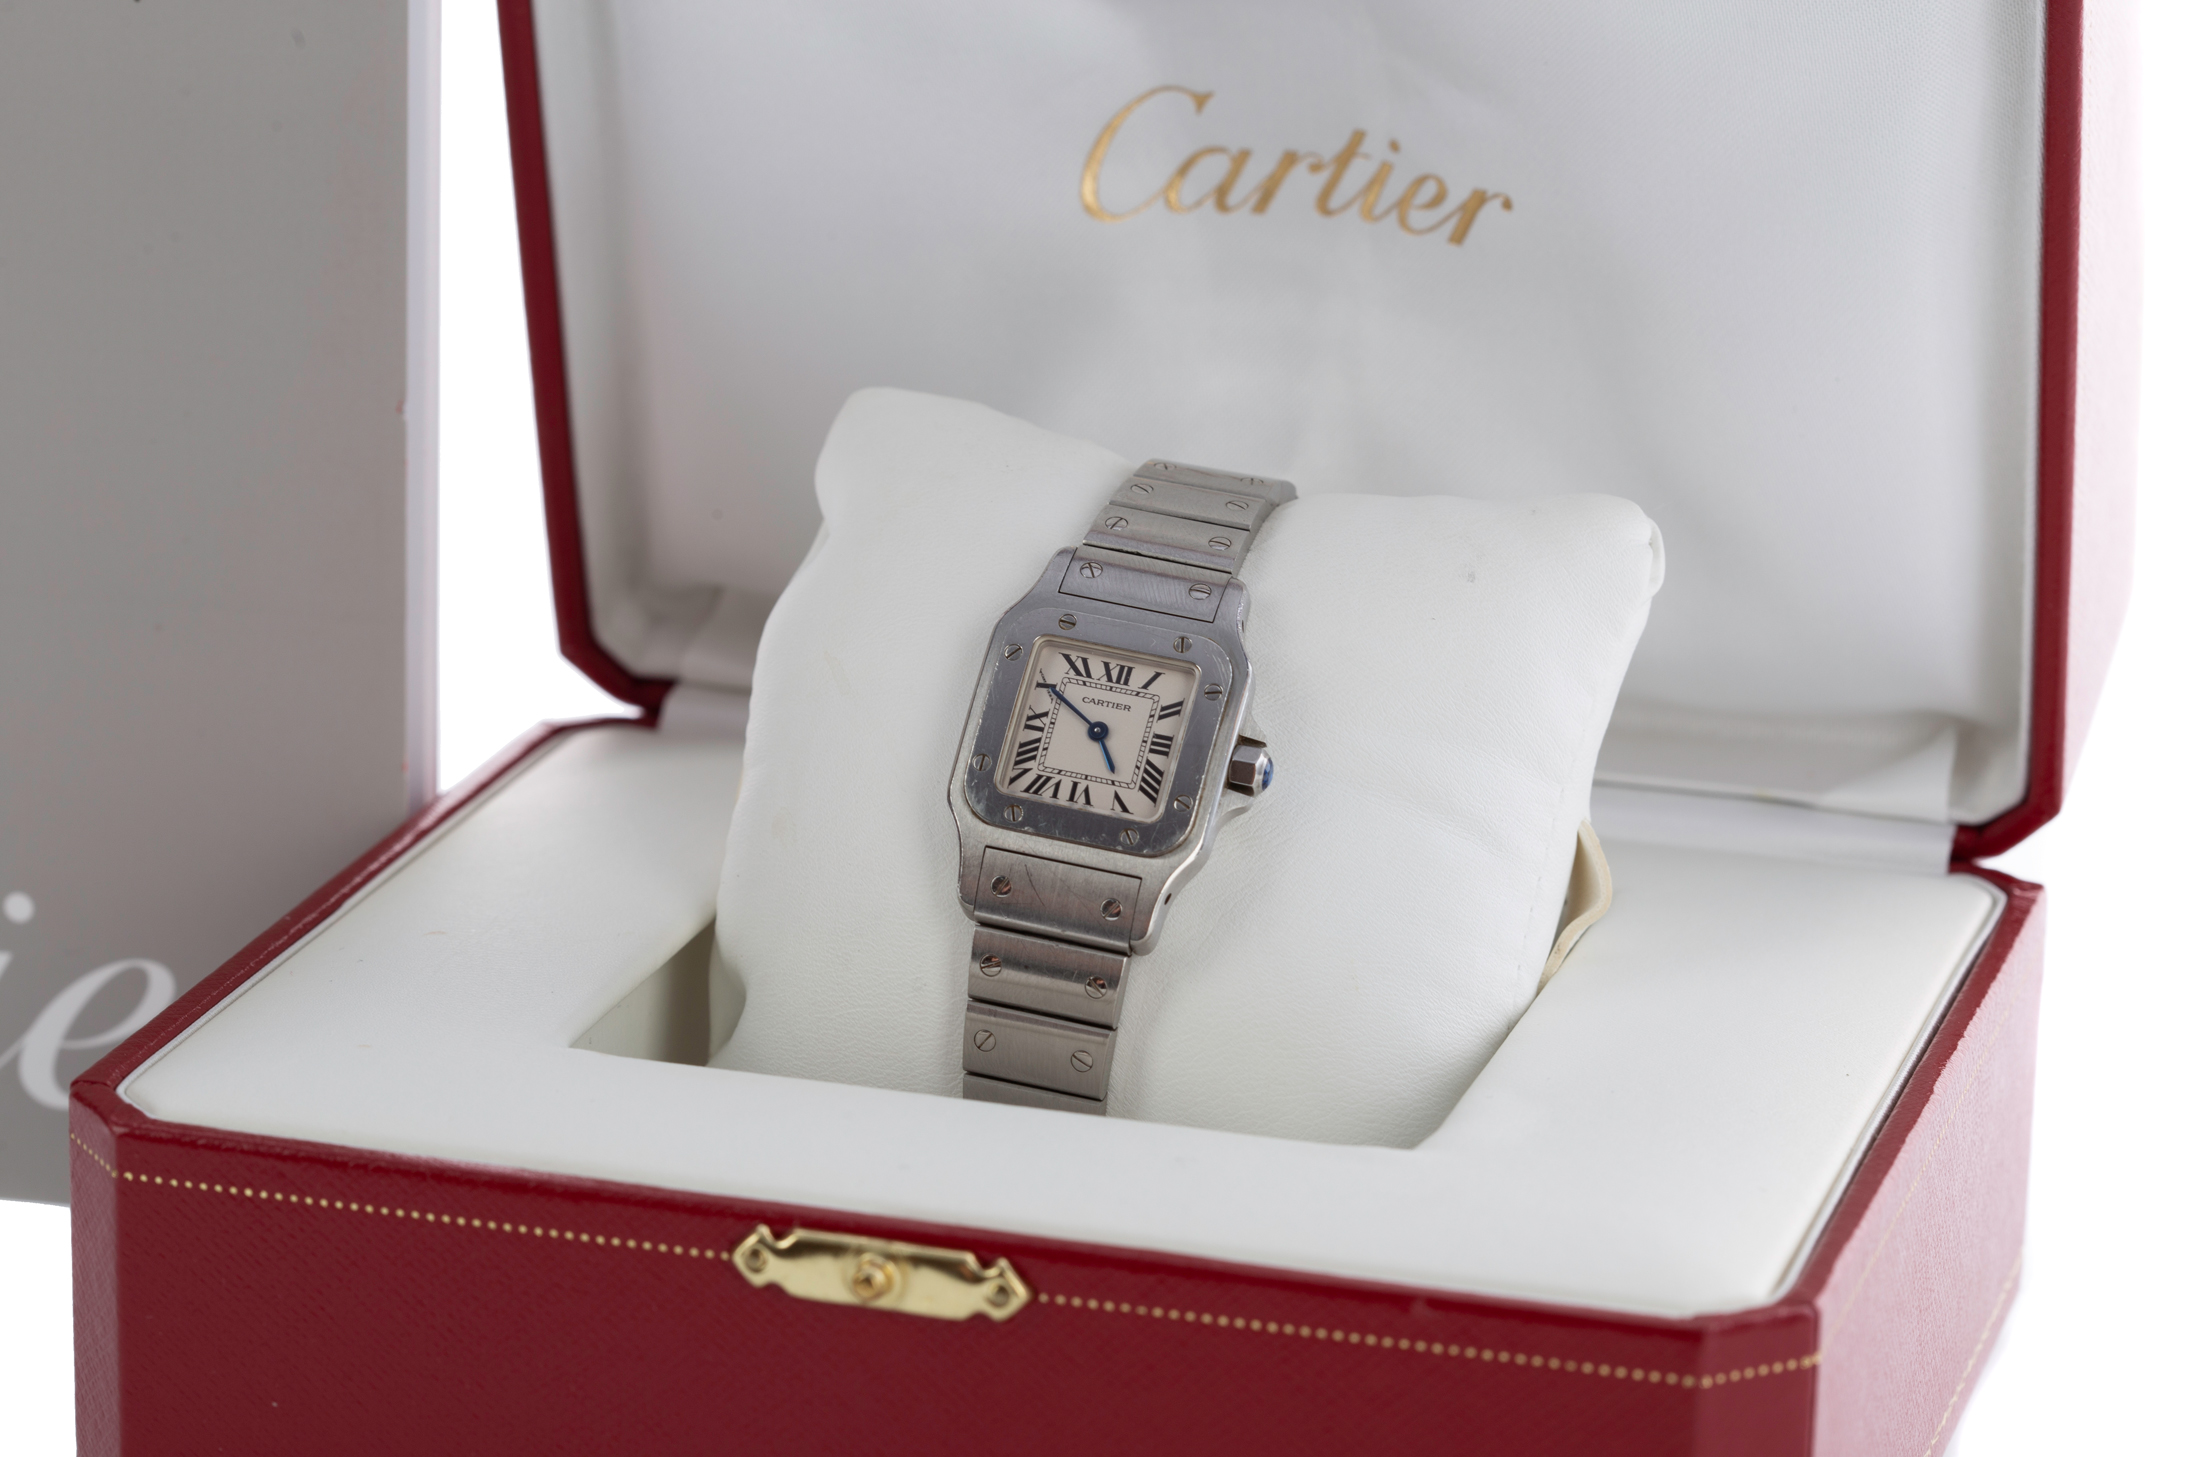 CARTIER SANTOS STAINLESS STEEL QUARTZ WRIST WATCH, the square white dial with Roman hour markers, - Image 3 of 3